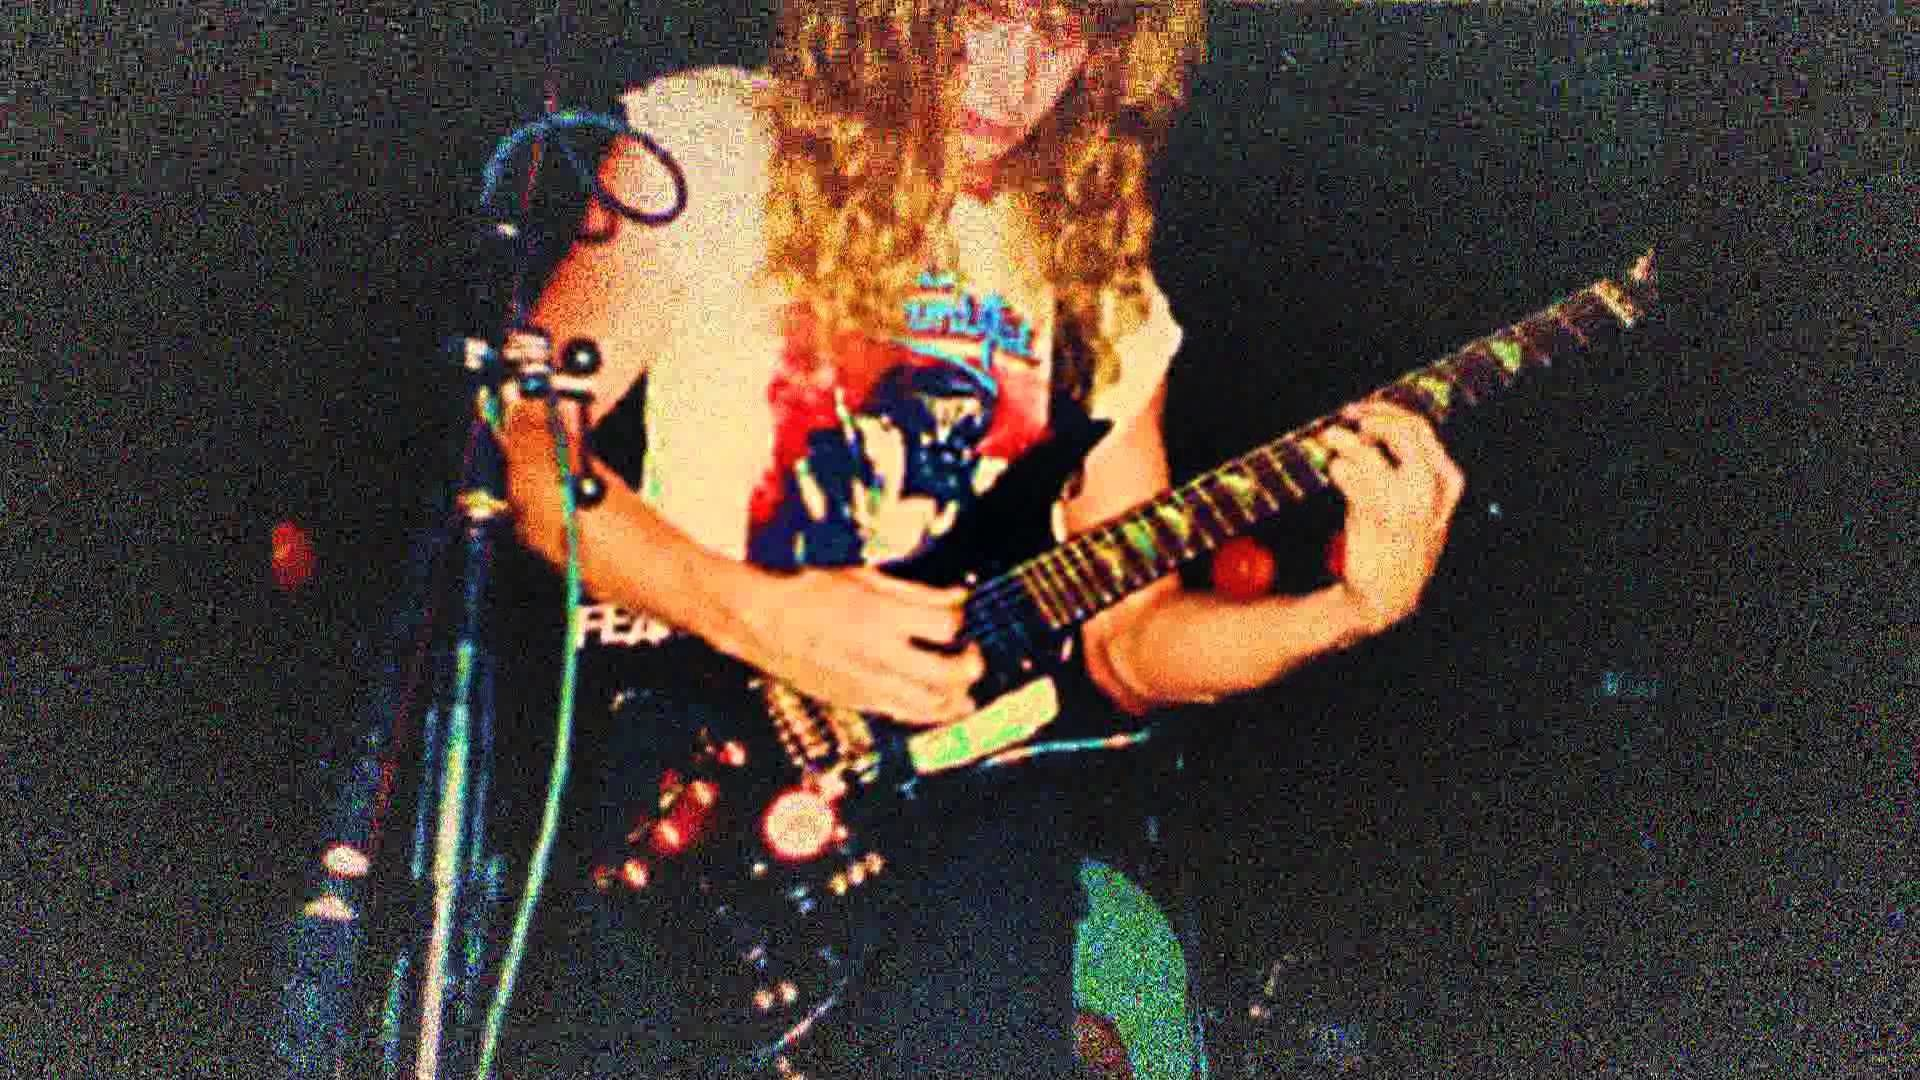 Res: 1920x1080, Megadeth Dave Mustaine Capsule